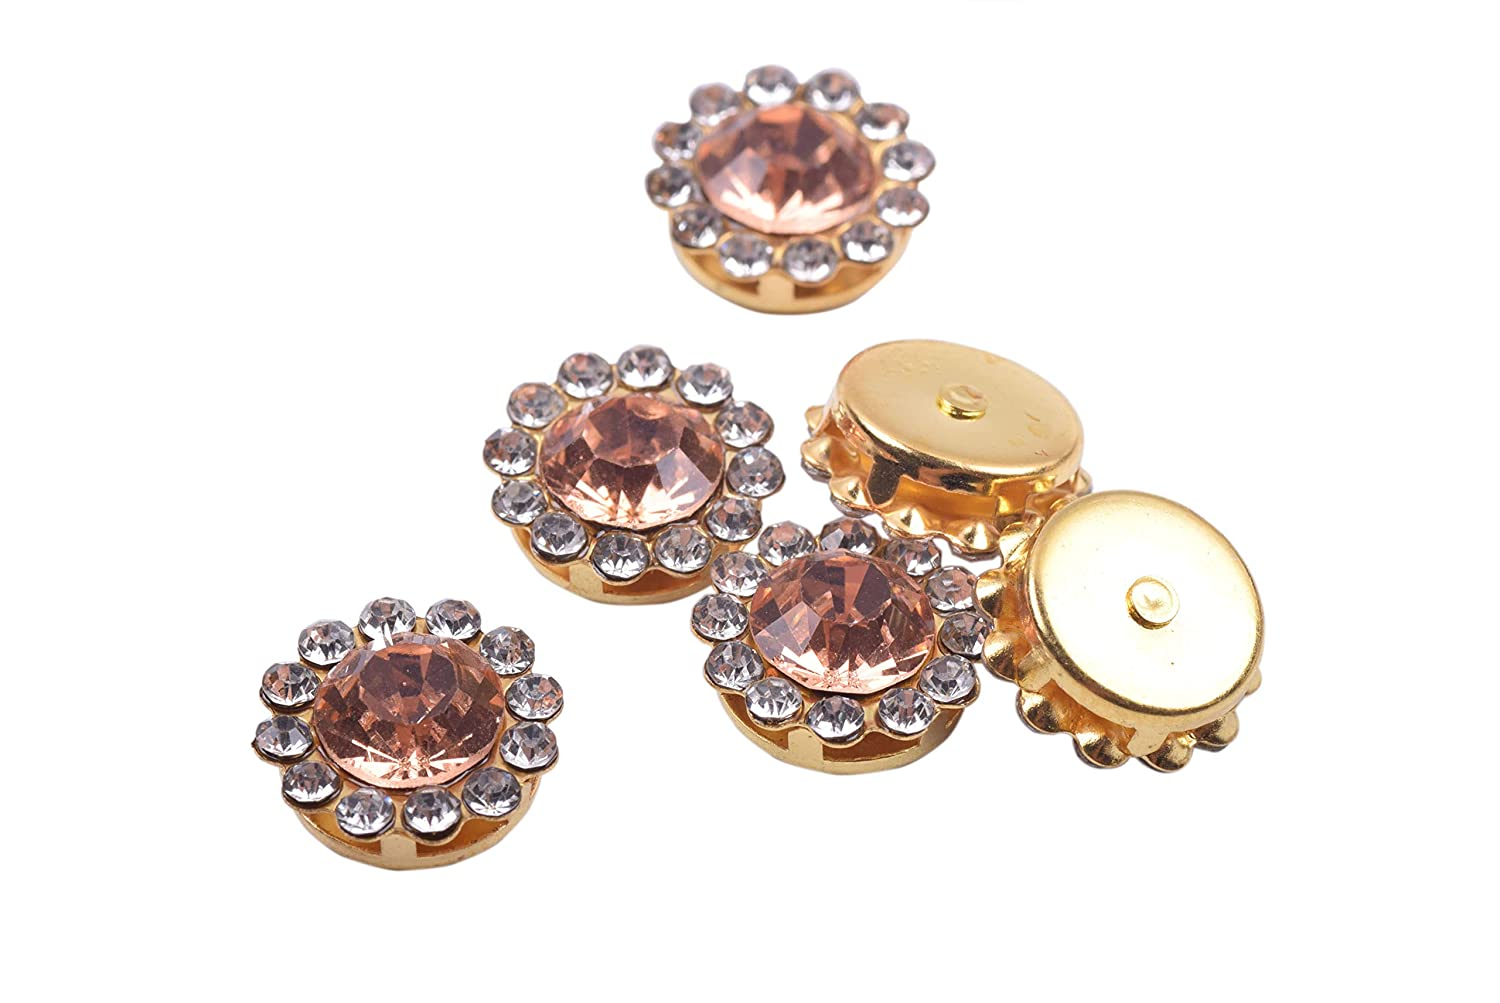 Bags Shoes KAOYOO 100Pcs Sun Flower Shape Crystal Rhinestone Buttons Golden Plated Brass Base Sew on Buttons Ideal for Clothing Wedding Party Decorations Champagne Headpieces,Wedding Dress